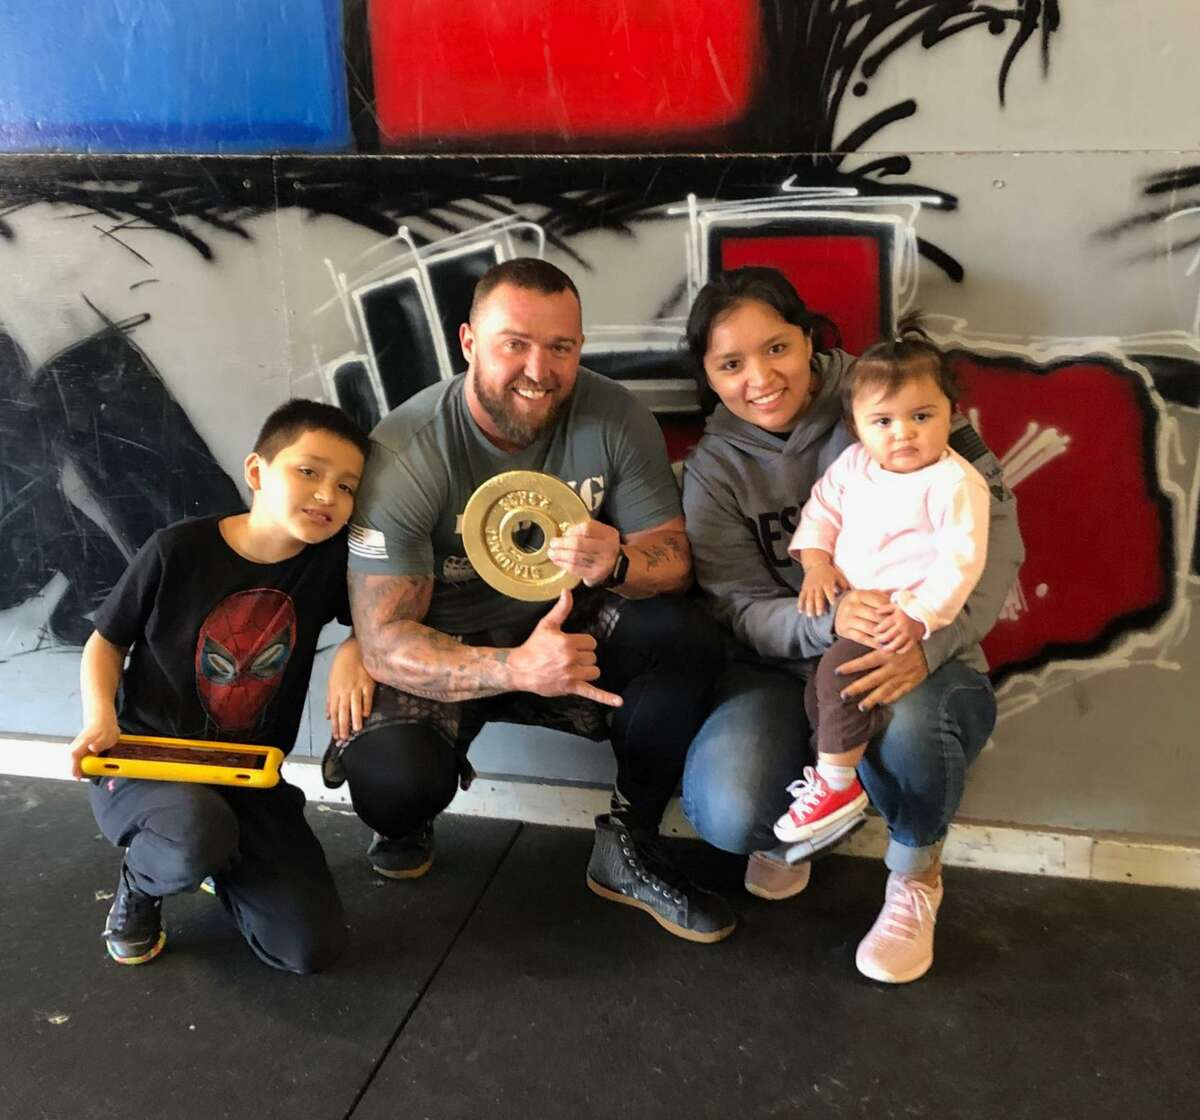 Brody Clapp and his wife Priscilla, their two children, Tristan, 10, and Taya, 1, are seen in this undated photo. Brody Clapp is holding a CrossFit championship award.